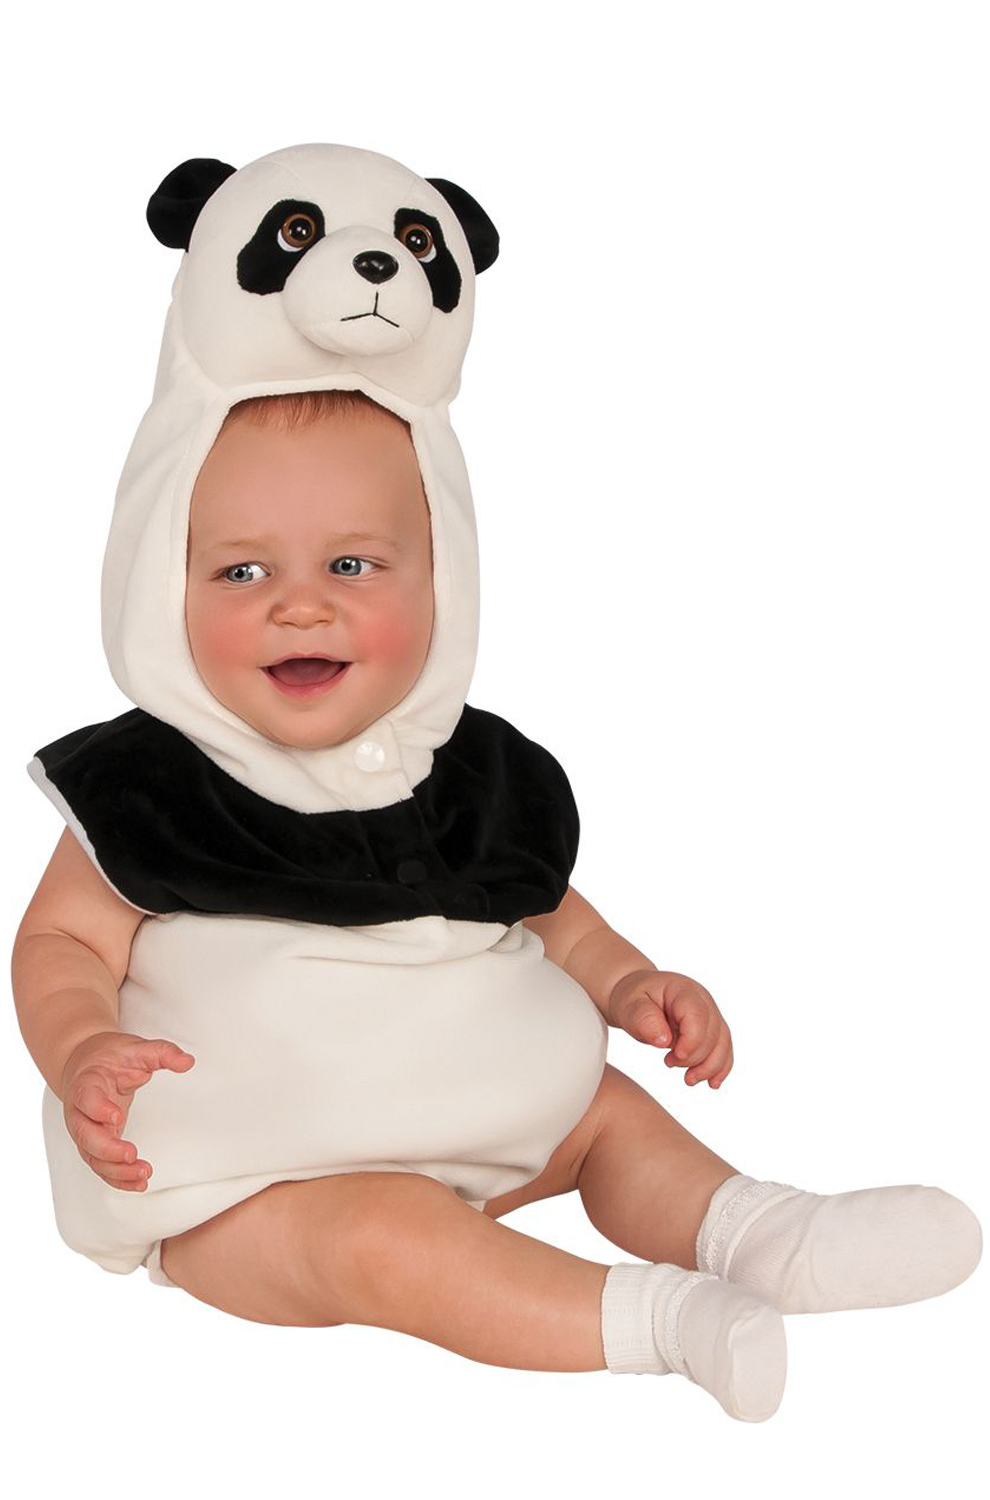 This playful, two-piece design boasts tons of jungle-inspired flair and makes dressing up as a baby panda all the more whimsical. Plus, the ultra-comfy fabric will feel soft and breathable on their skin.